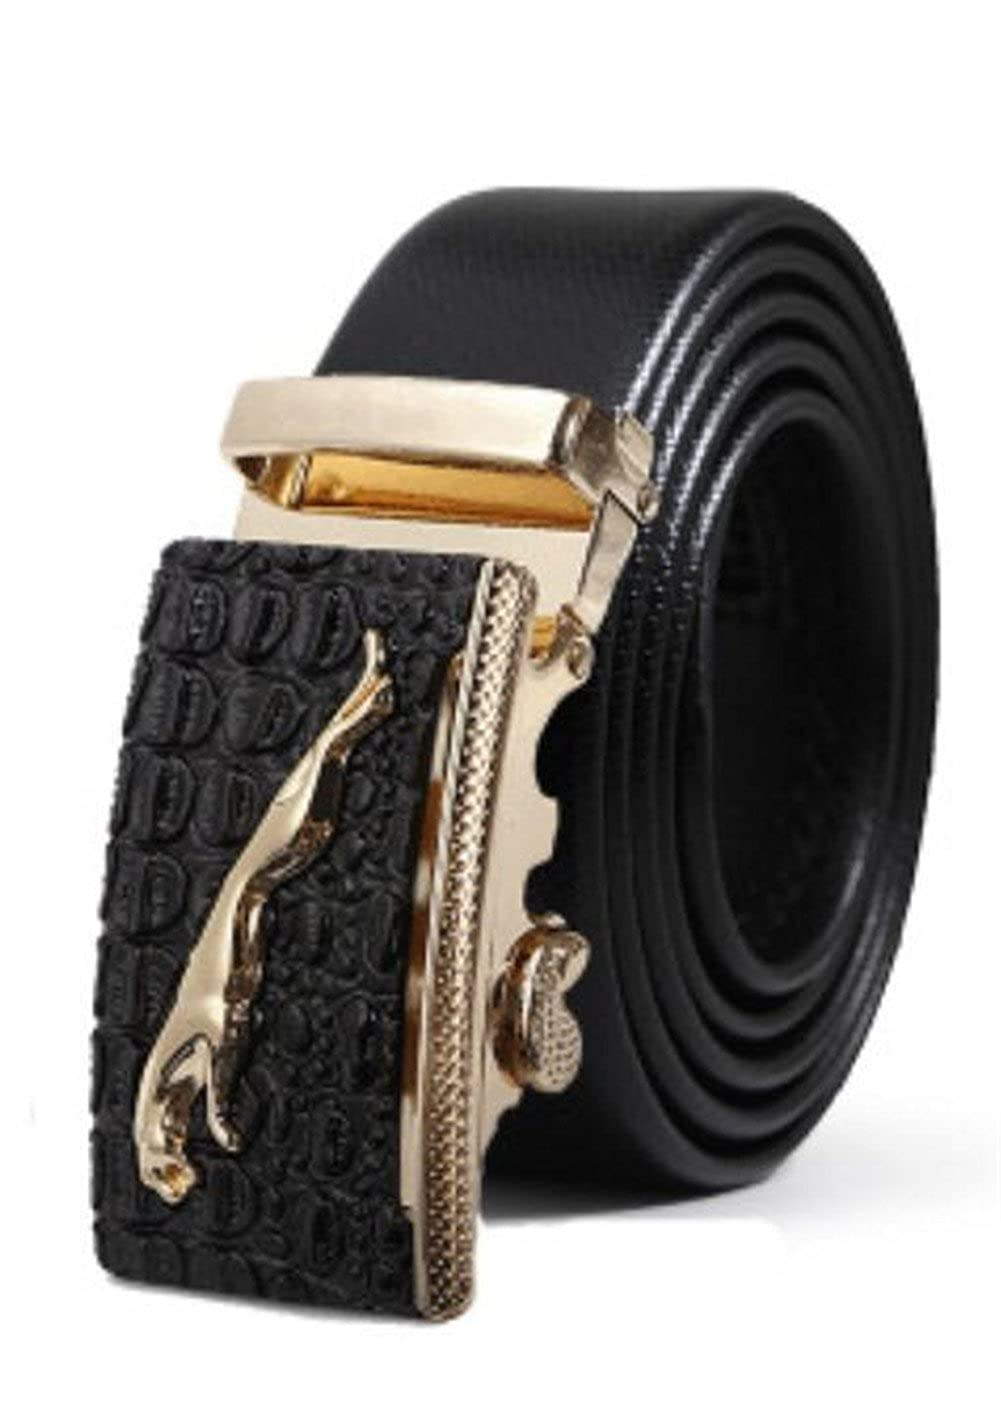 in inches Mens Belt Ratchet Belt Classic Dress Upscale Leather Fashion Automatic Buckle black14, waist20-43